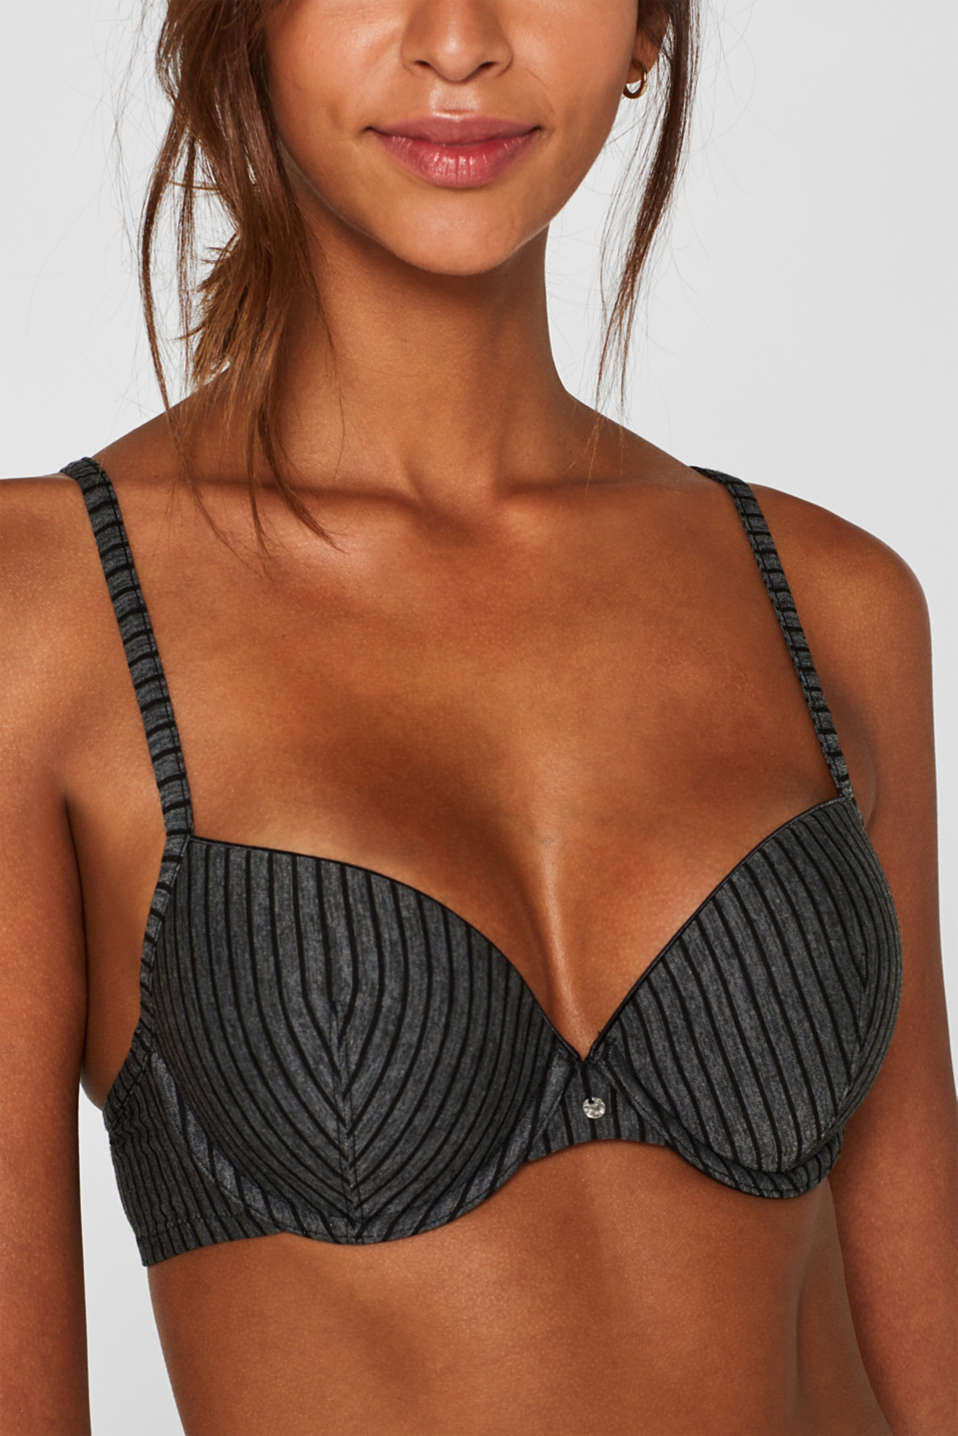 Padded underwire bra with stripes, DARK GREY, detail image number 2